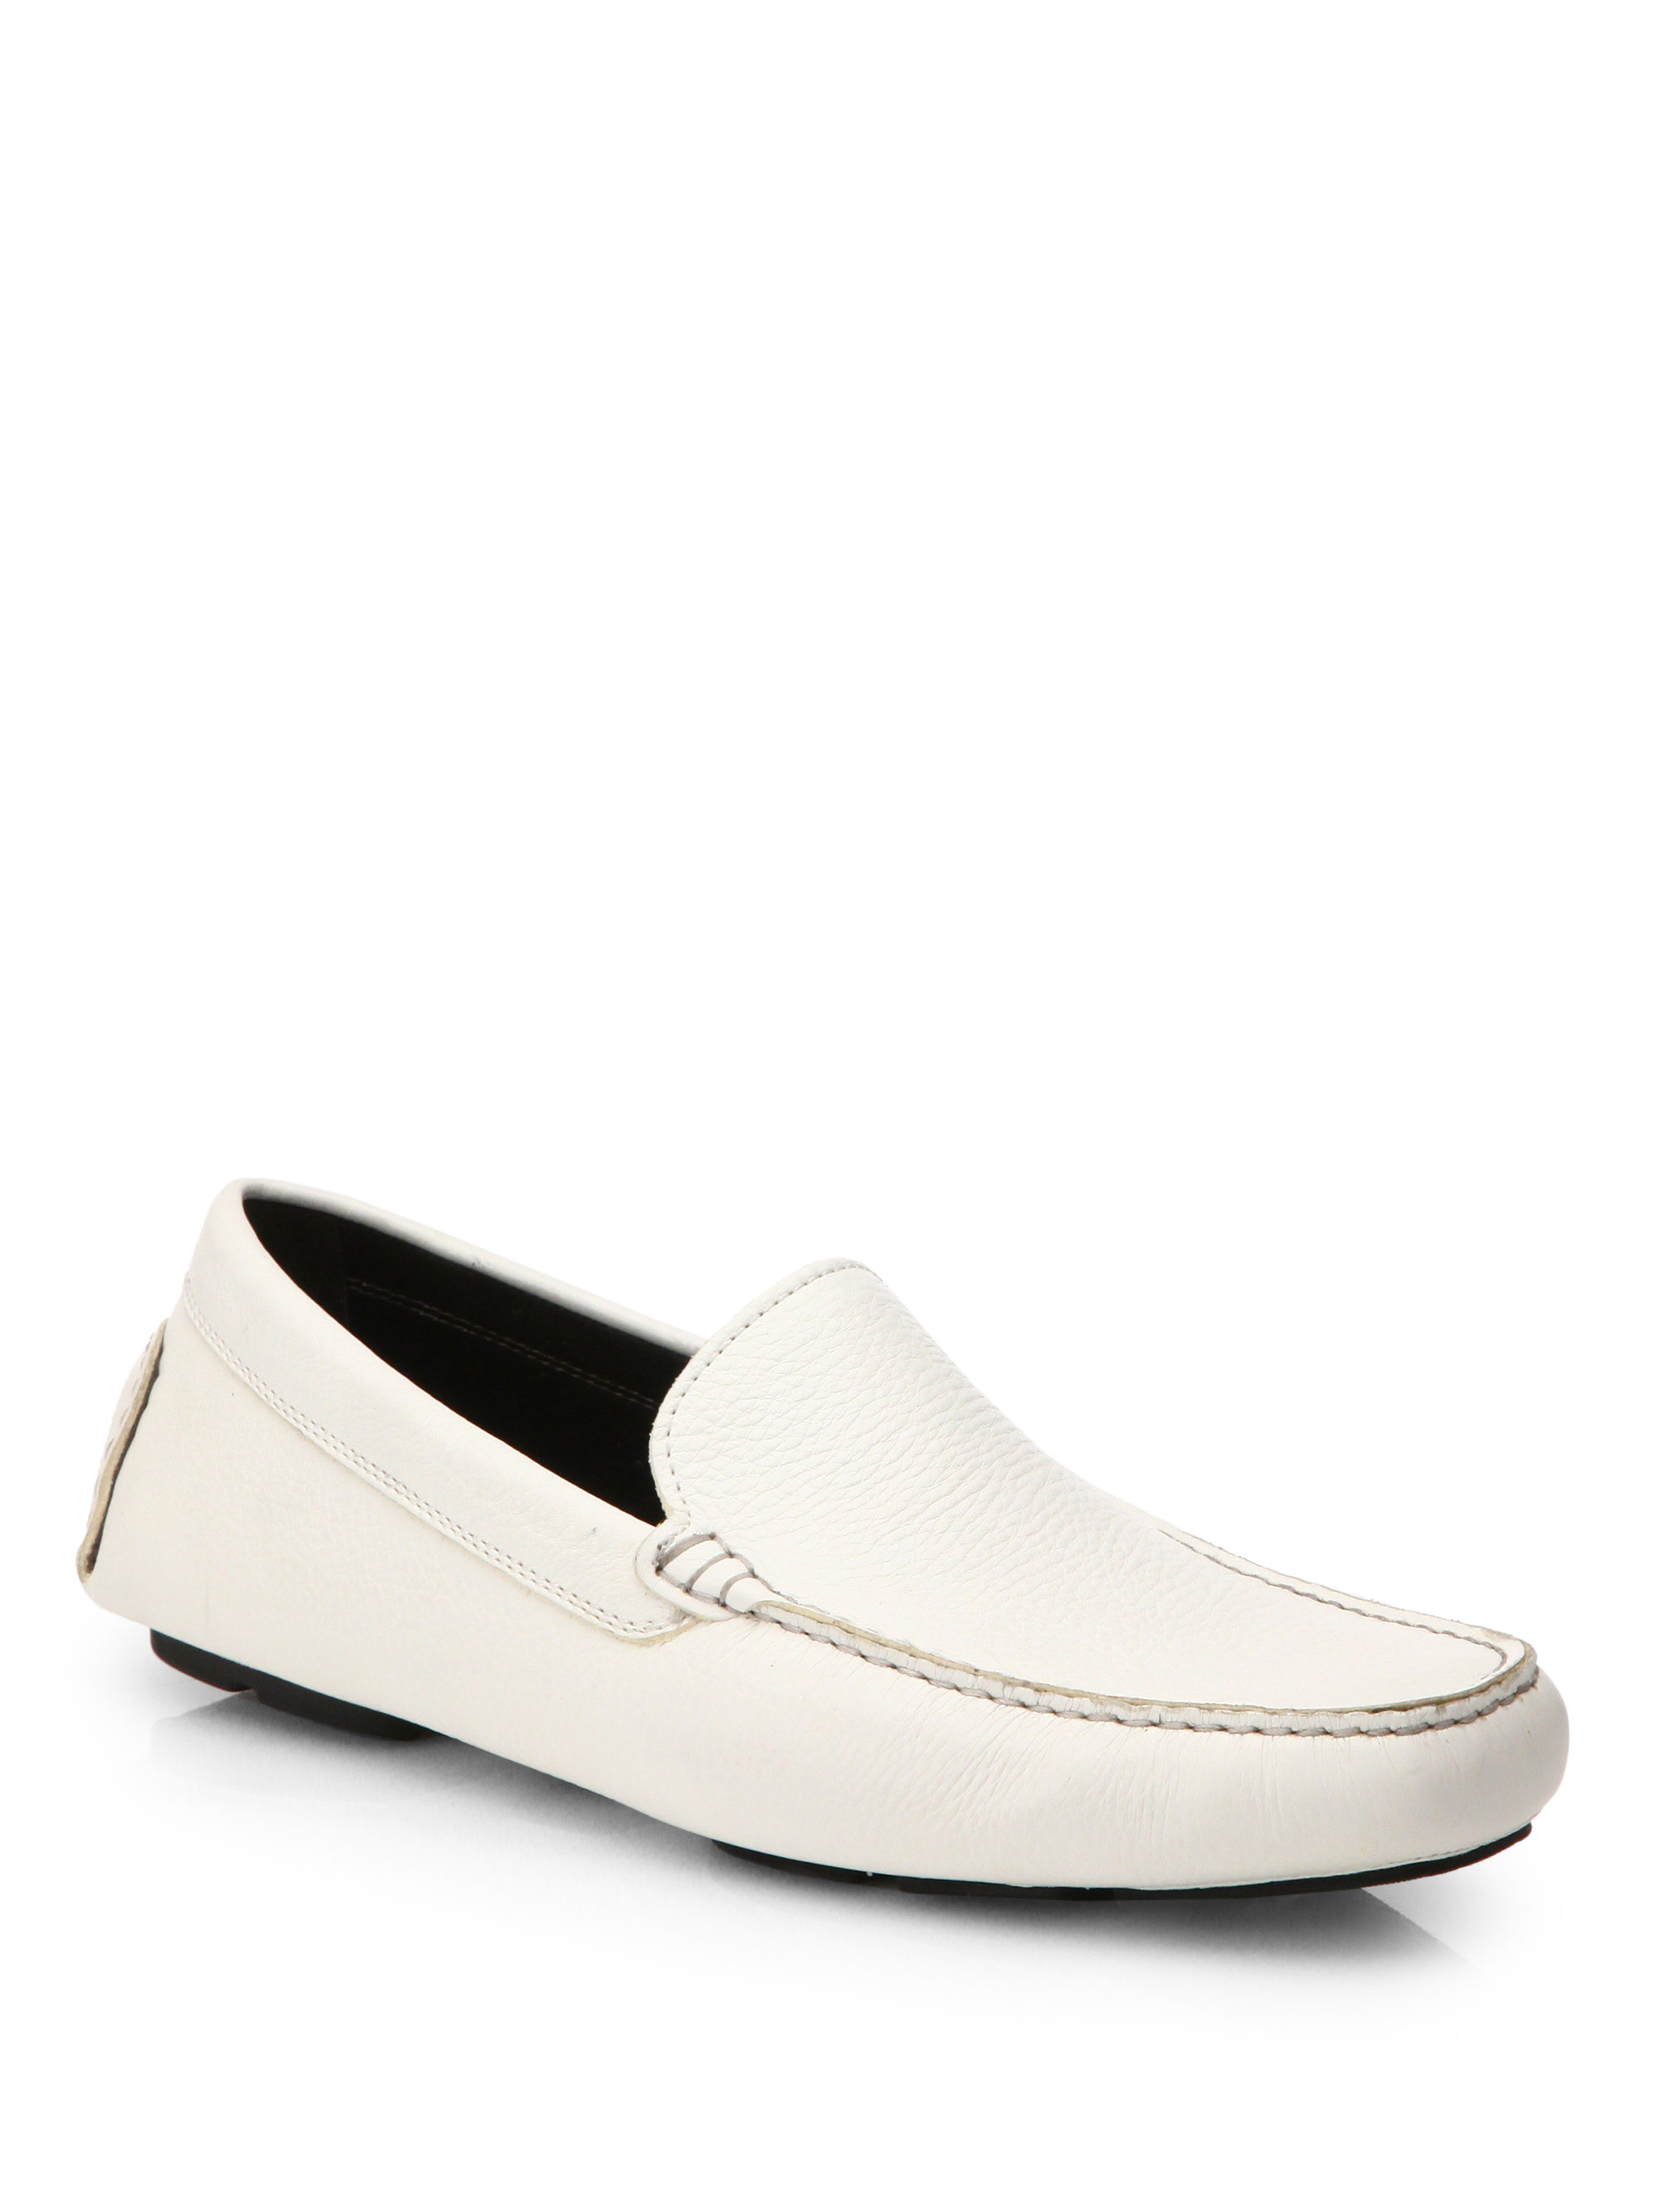 Lyst To Boot Pebbled Leather Driving Moccasins In White